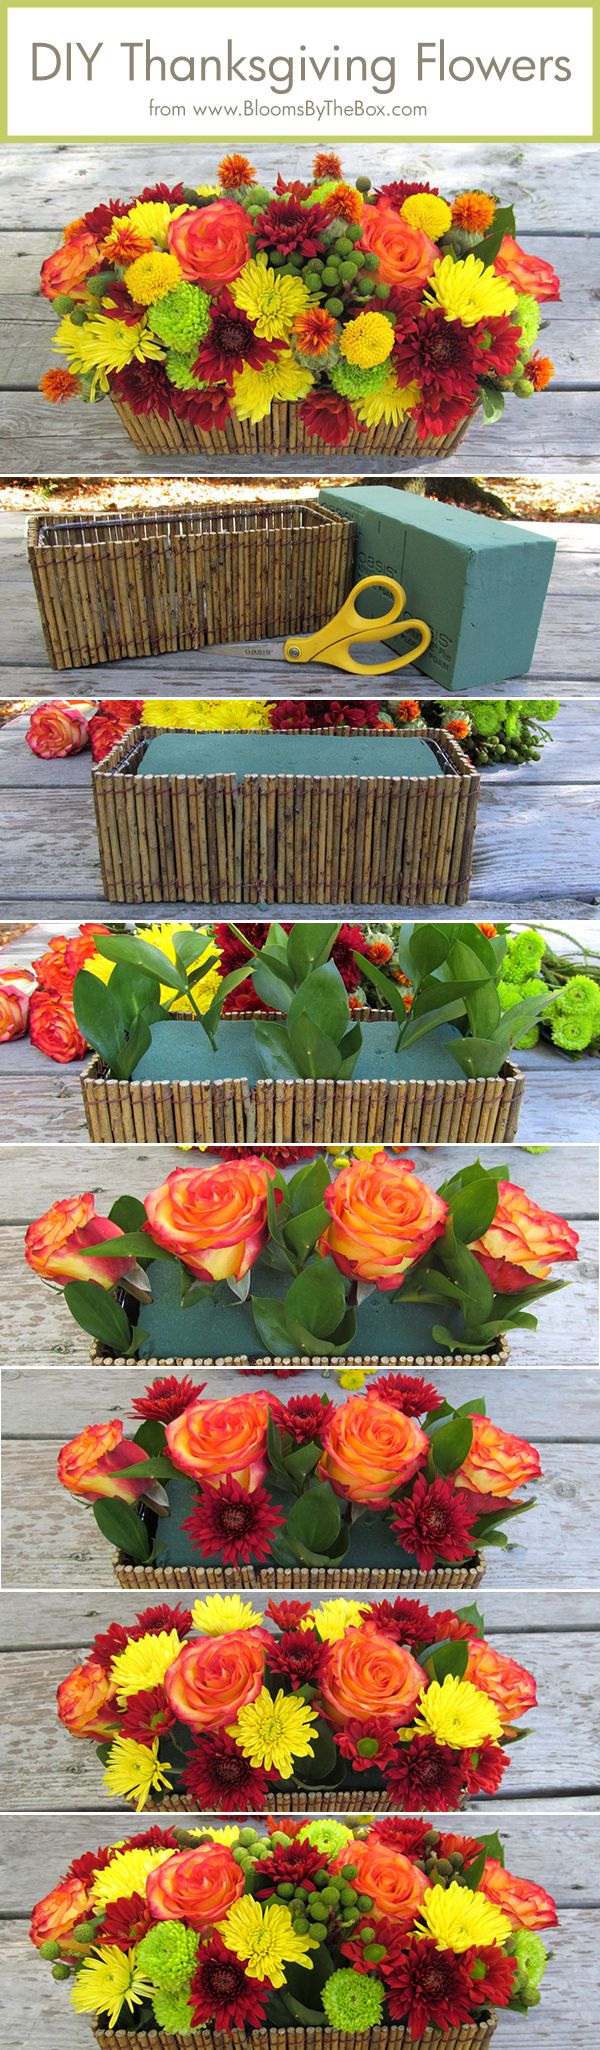 DIY Thanksgiving flower tutorial! Thanksgiving decor that keeps you within a budget.